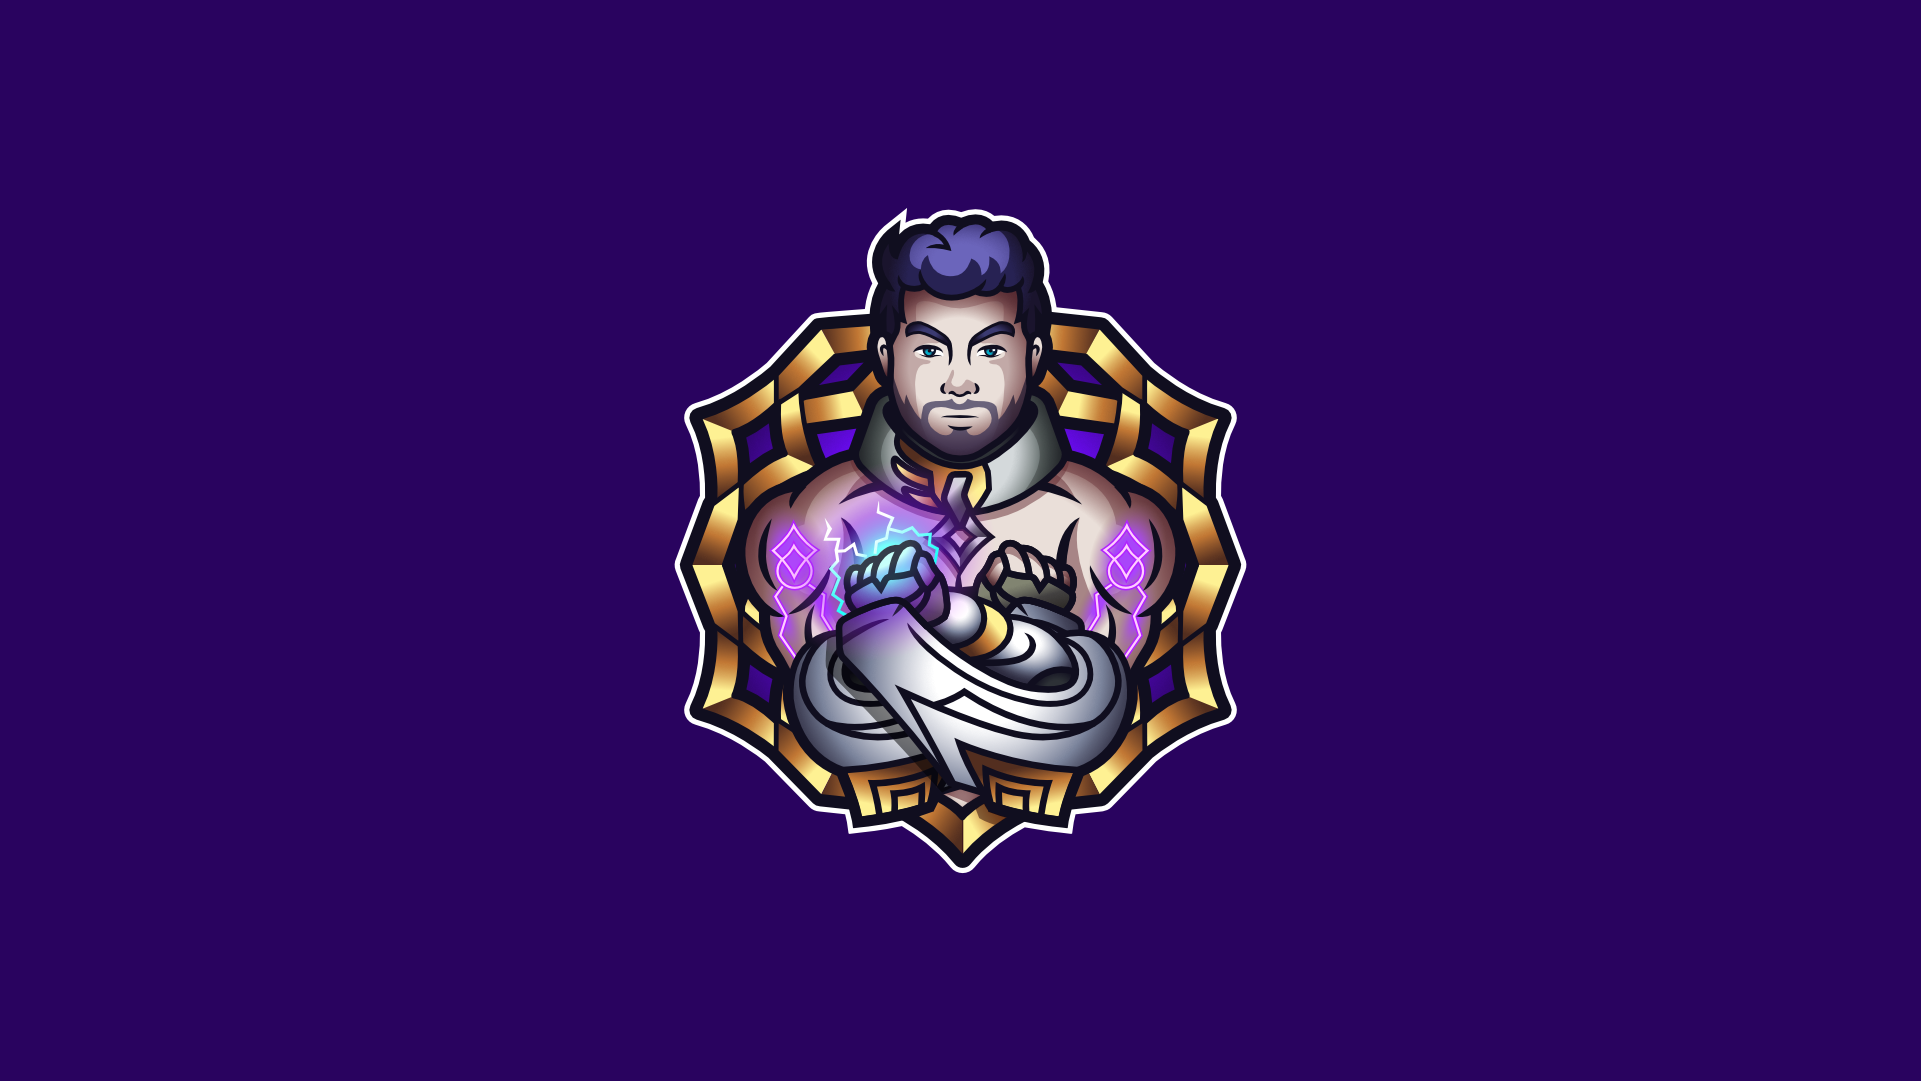 Mascot logo for a customer based on Sylas from the video game